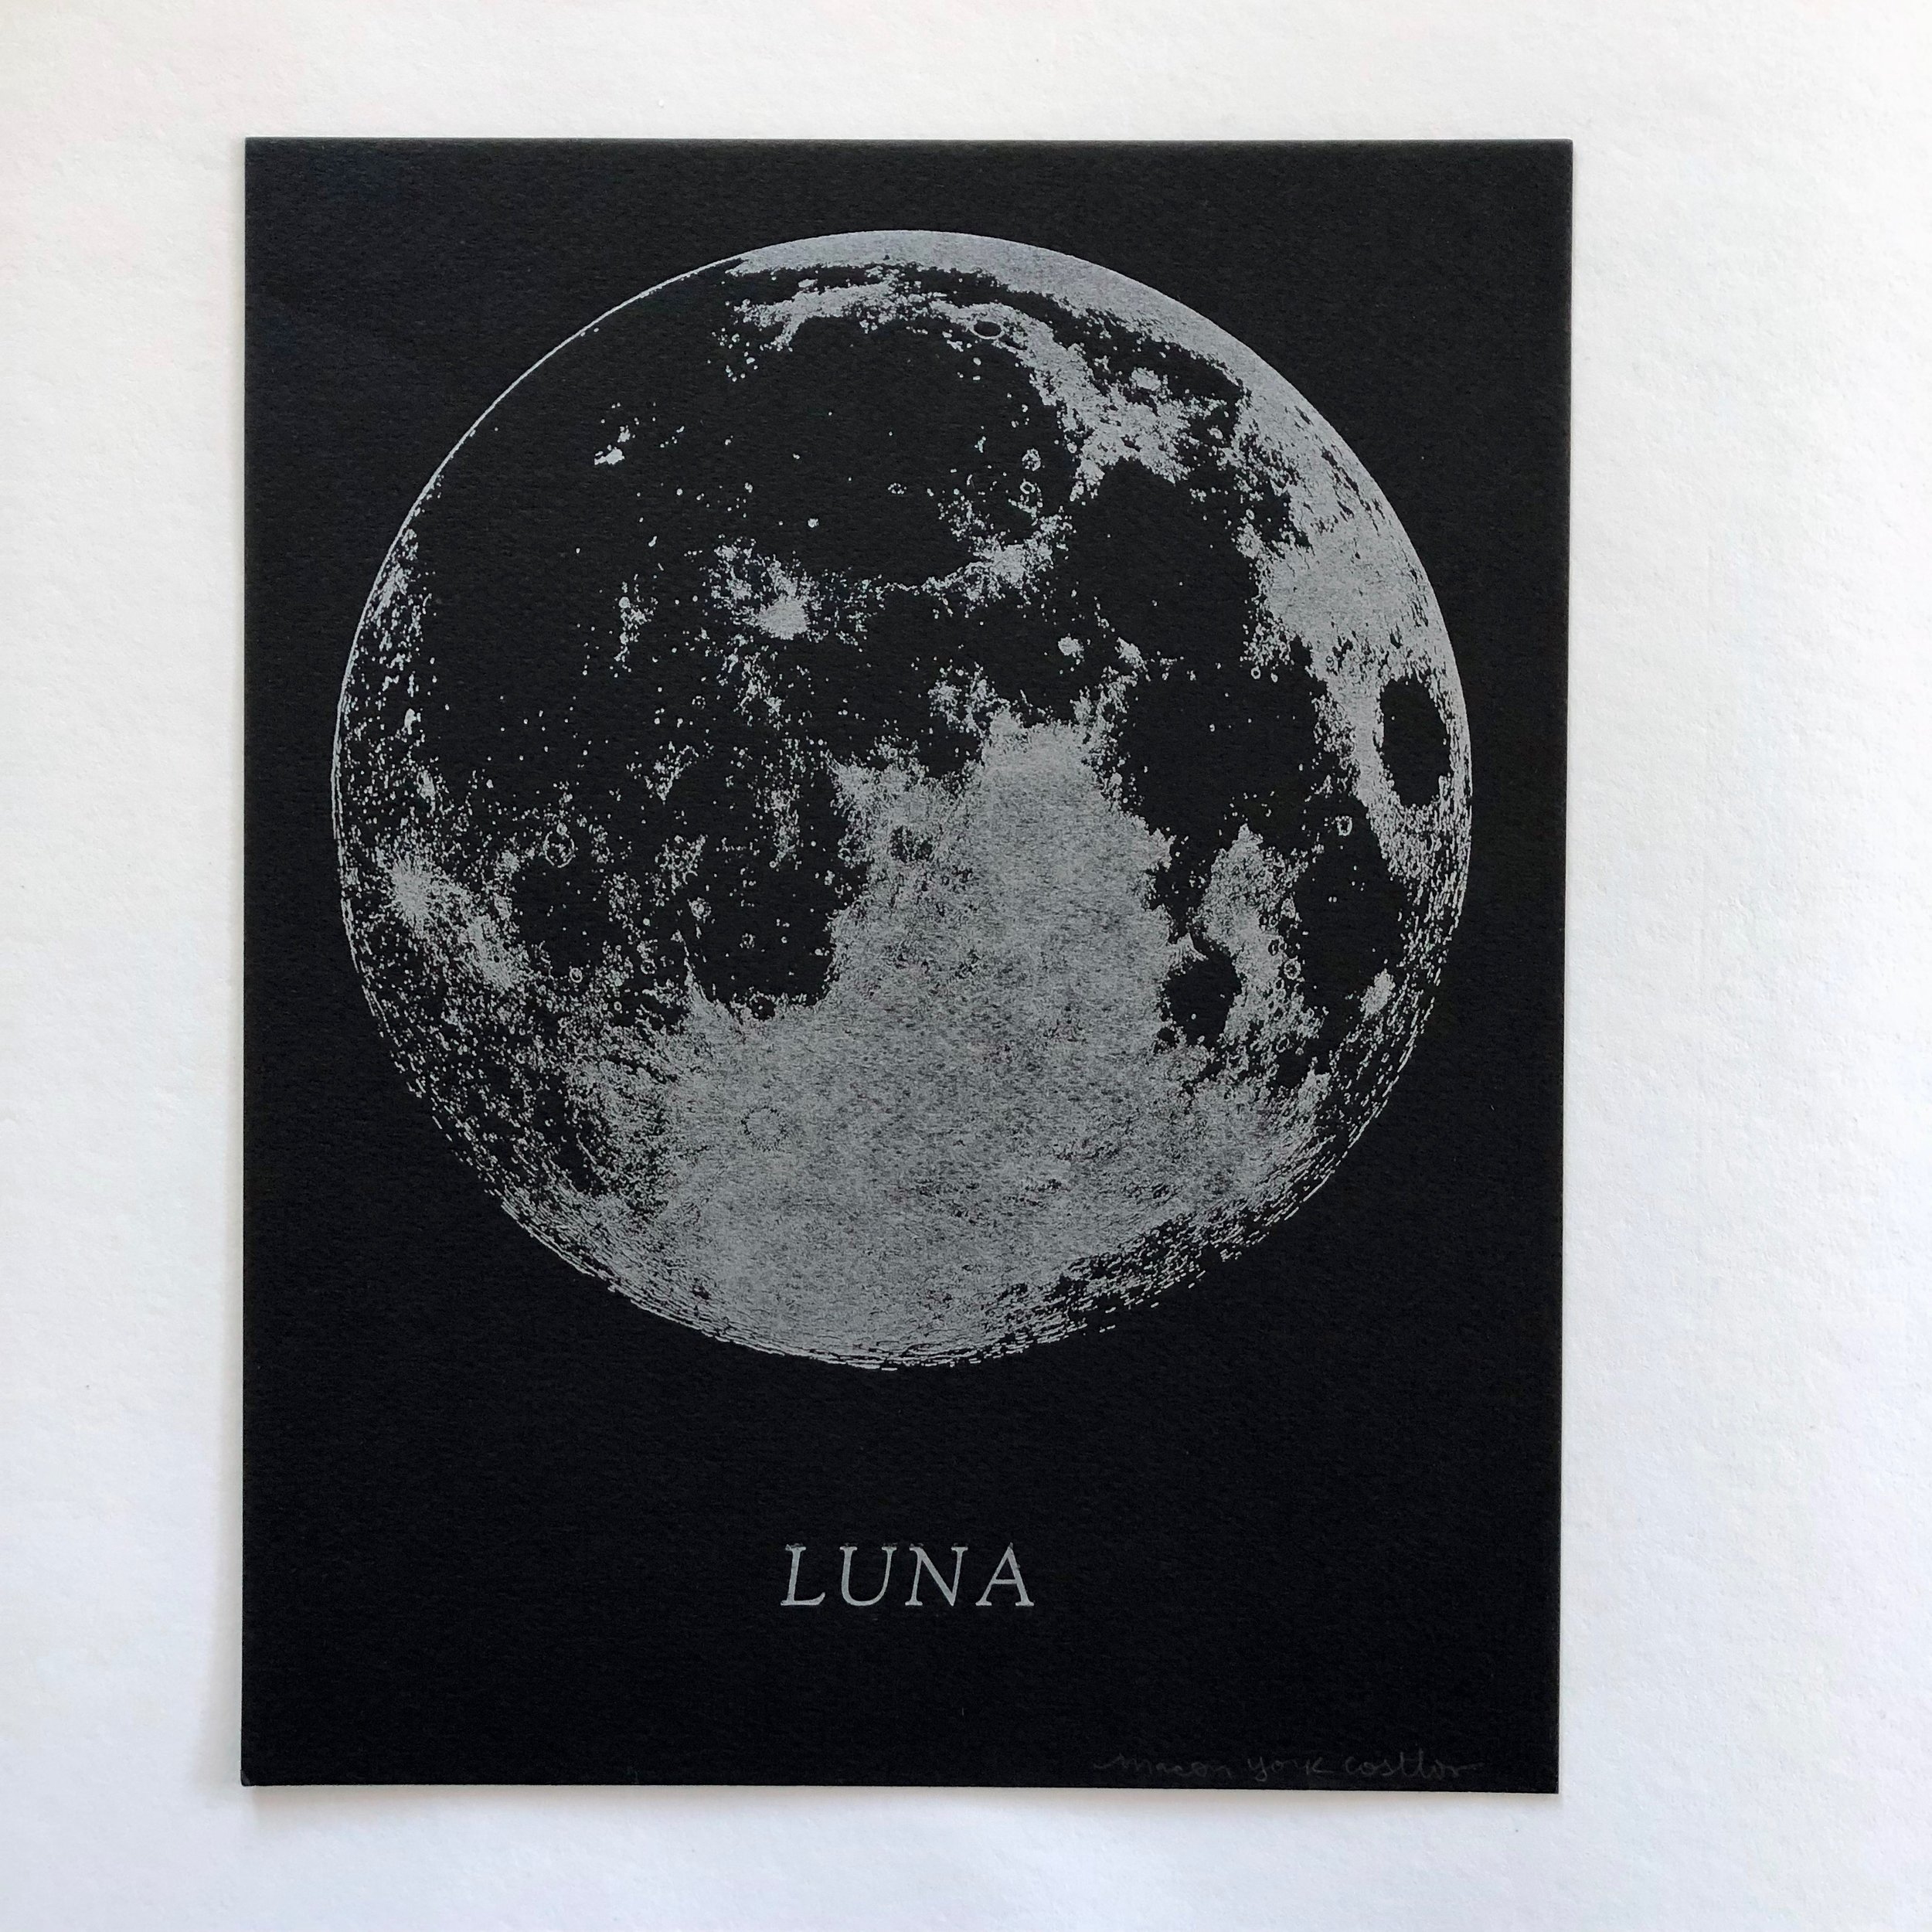 LUNA     Silver metallic full moon printed on black pastel paper. The ink has a beautiful shimmer.